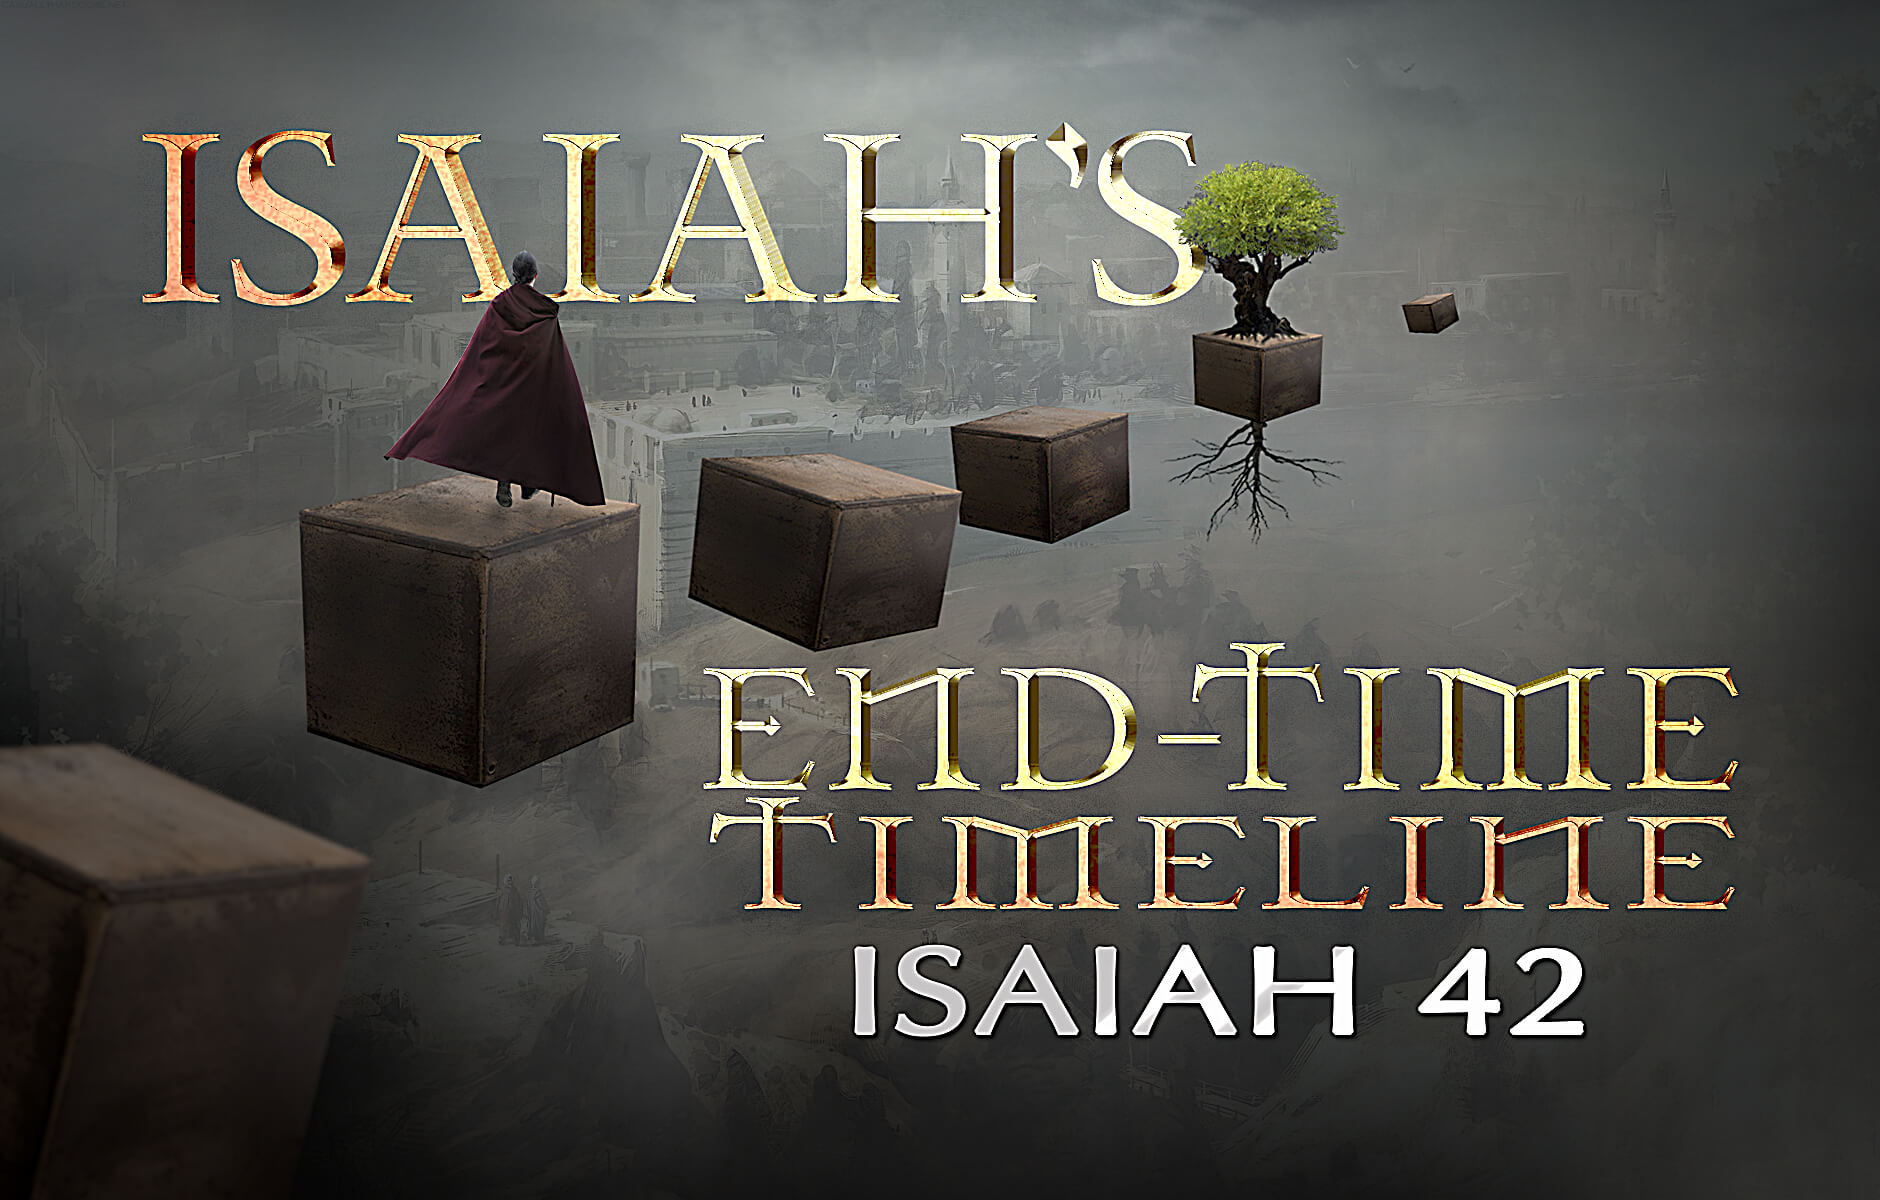 Isaiah's End-time Timeline Chapter 42